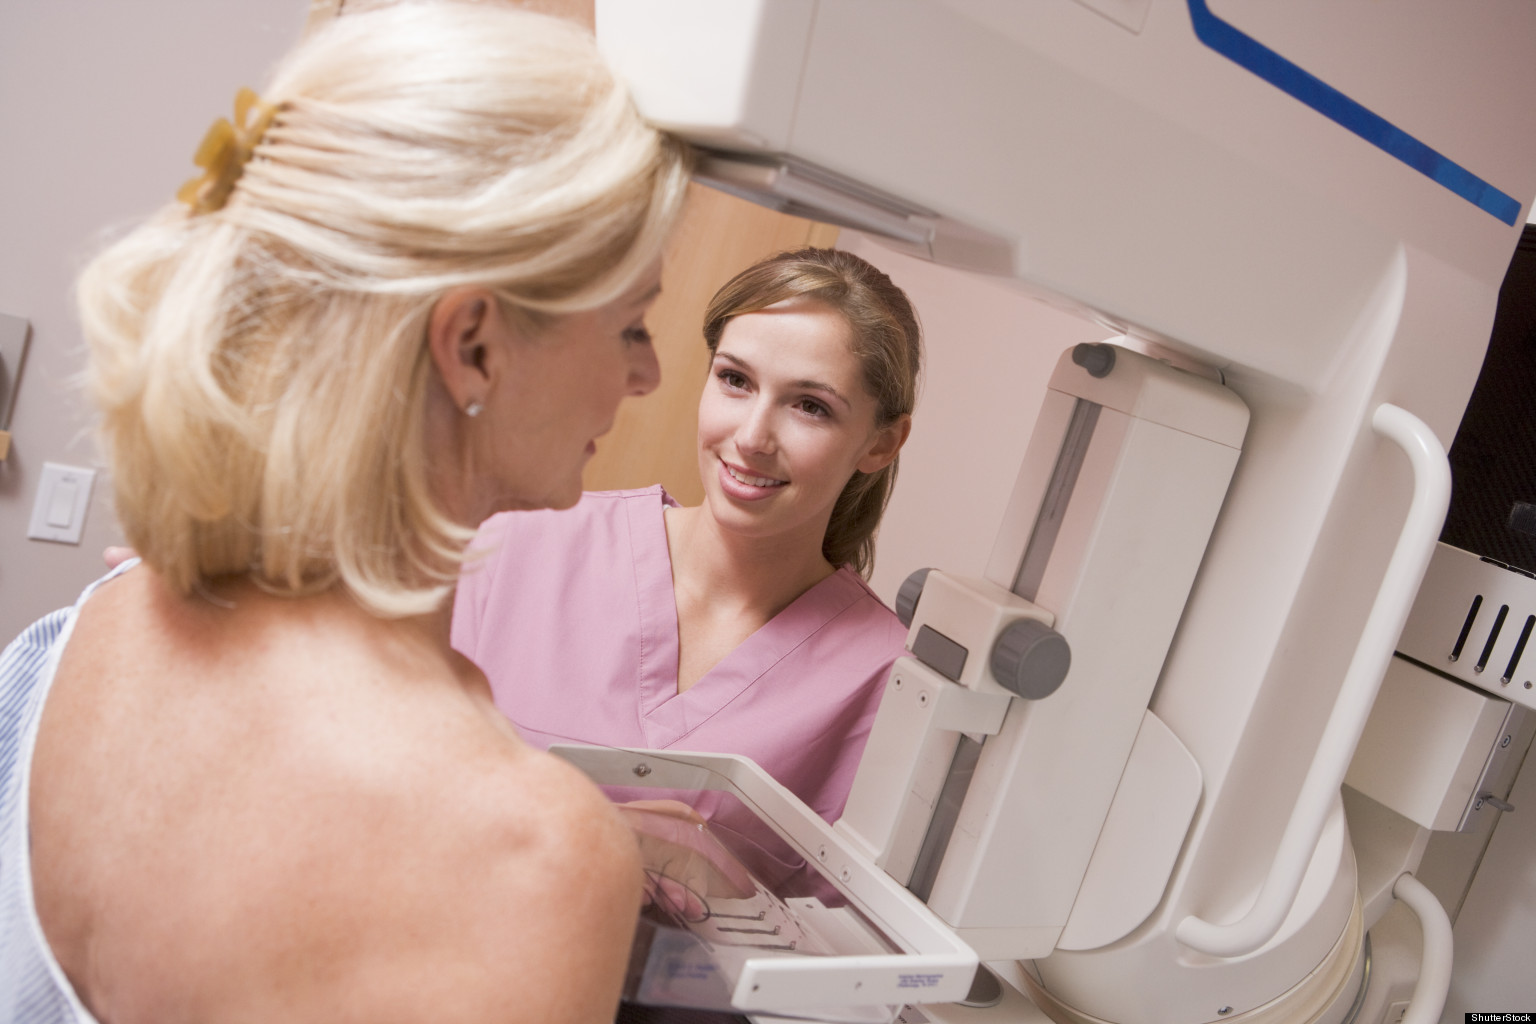 Are Abnormal Mammogram Results Common for Women Who